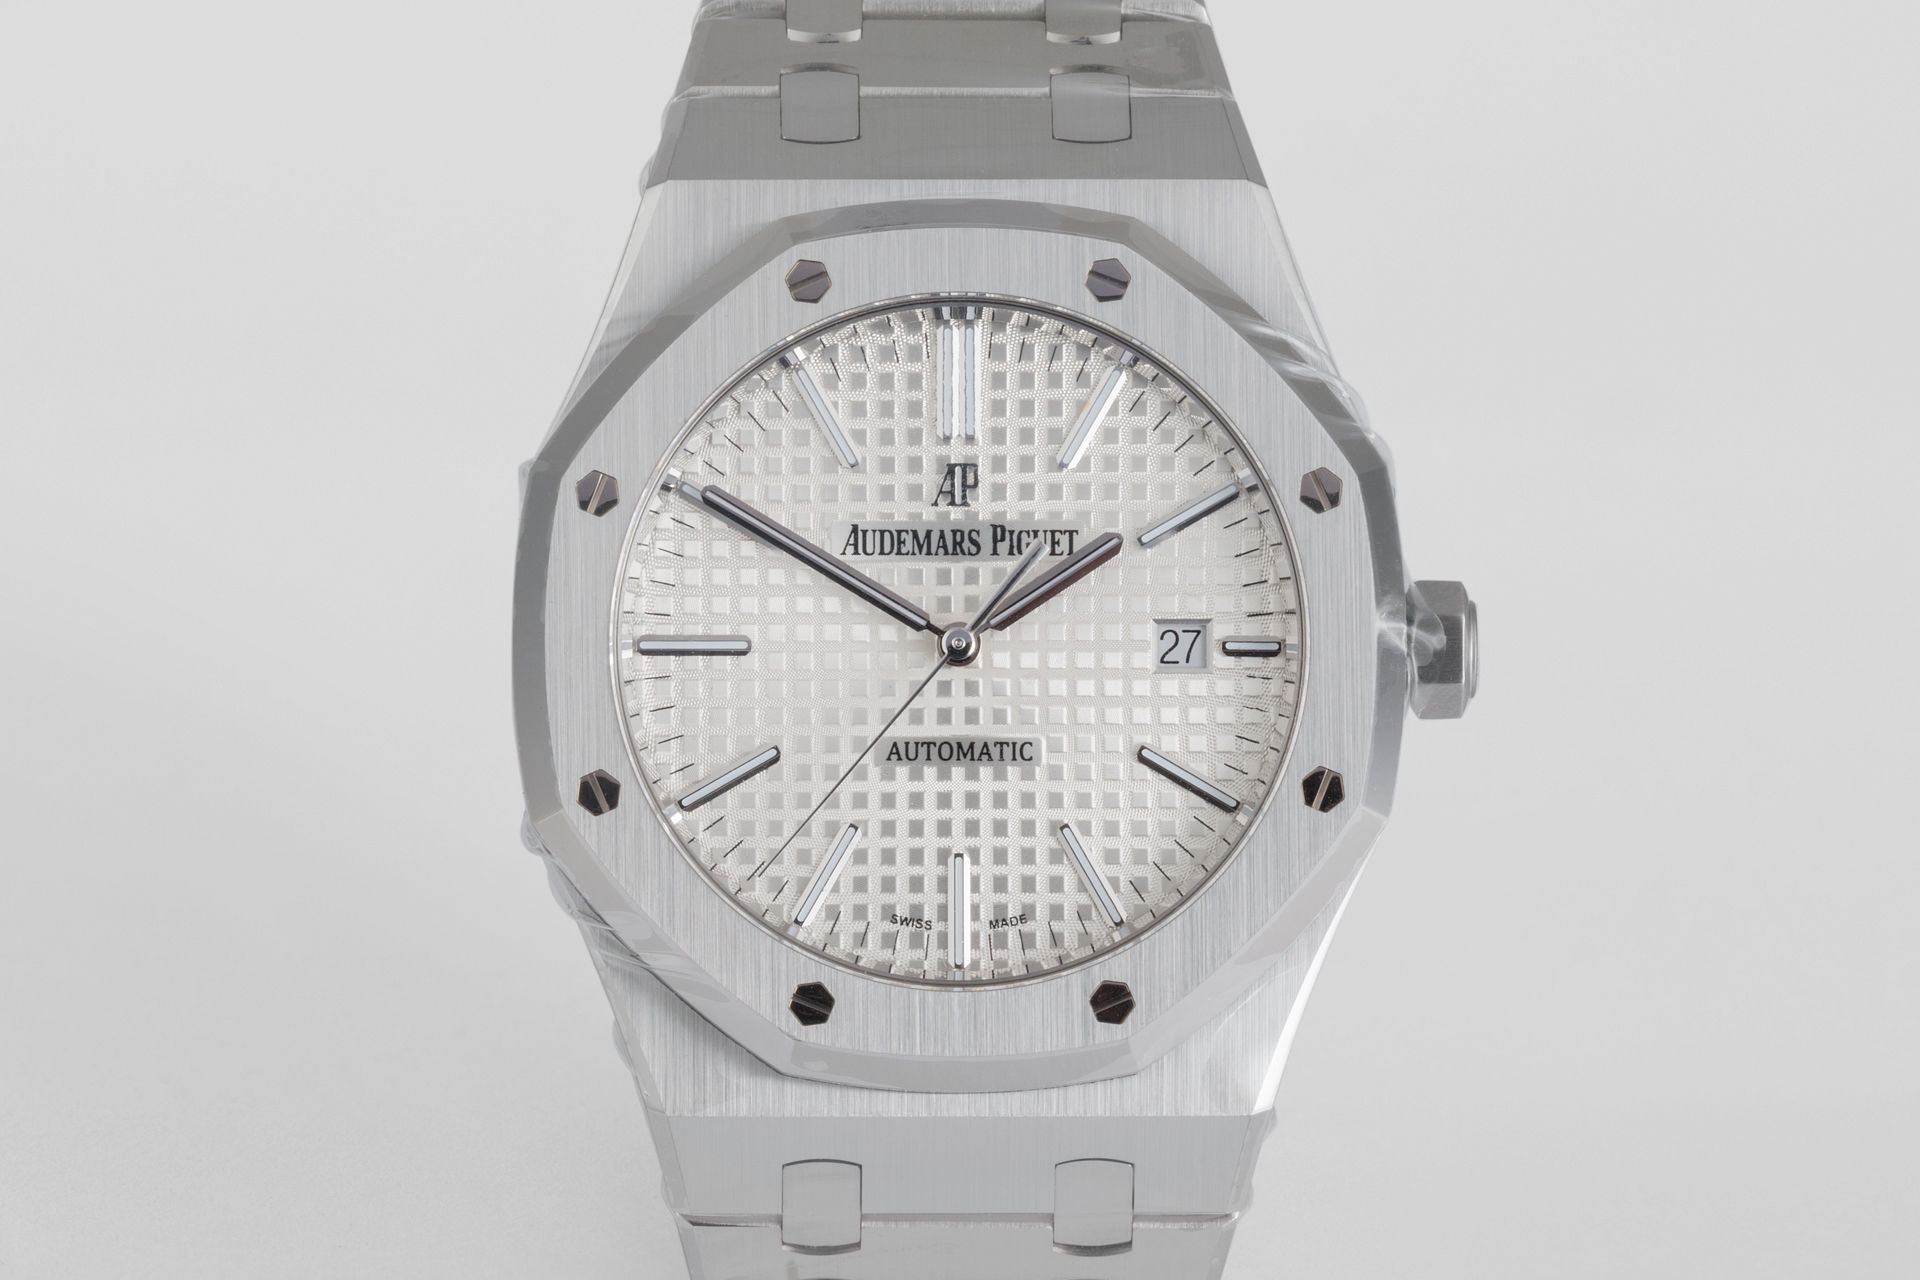 ref 15400ST.OO.1220ST.02 | '41mm Brand New 2017' | Audemars Piguet Royal Oak